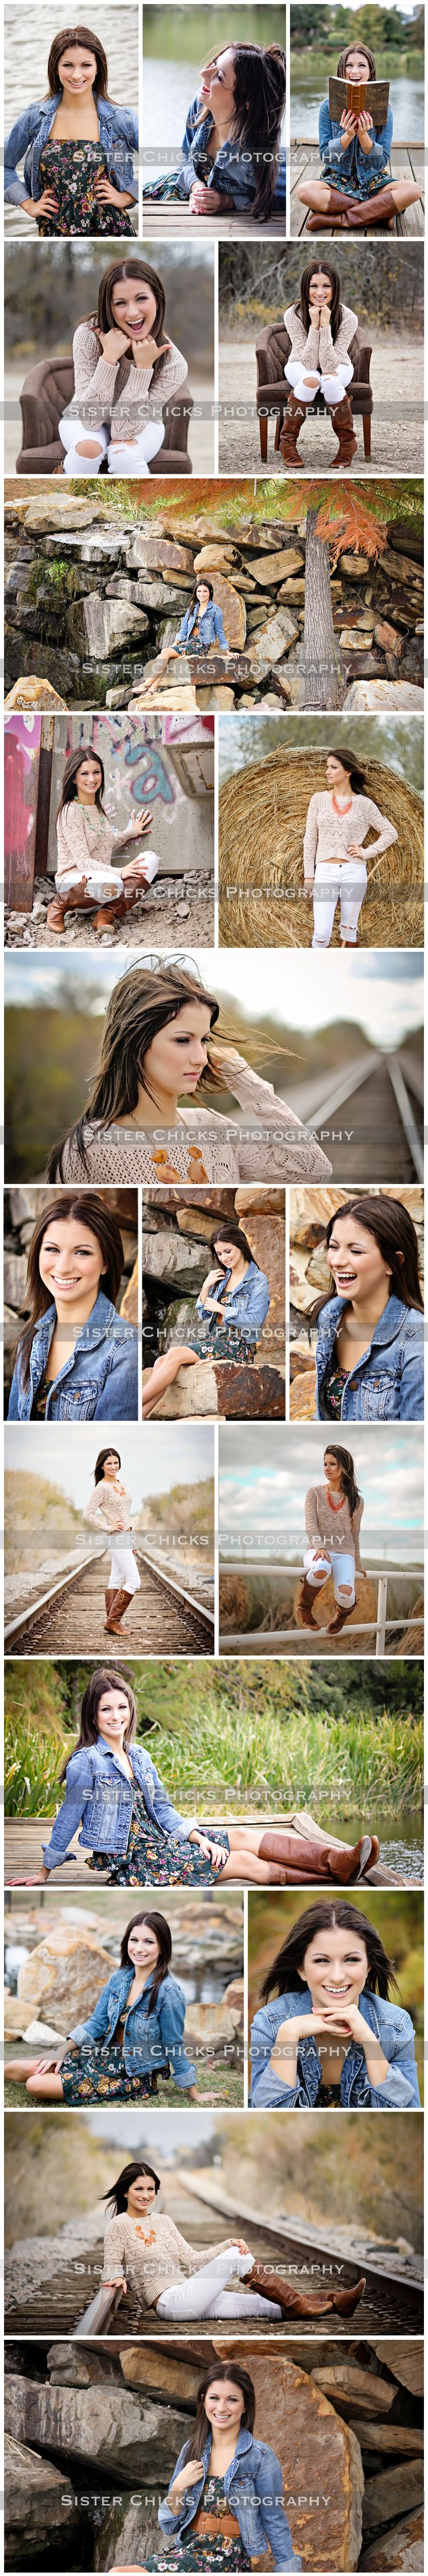 Sister Chicks Photography - Dallas Portrait Photographer